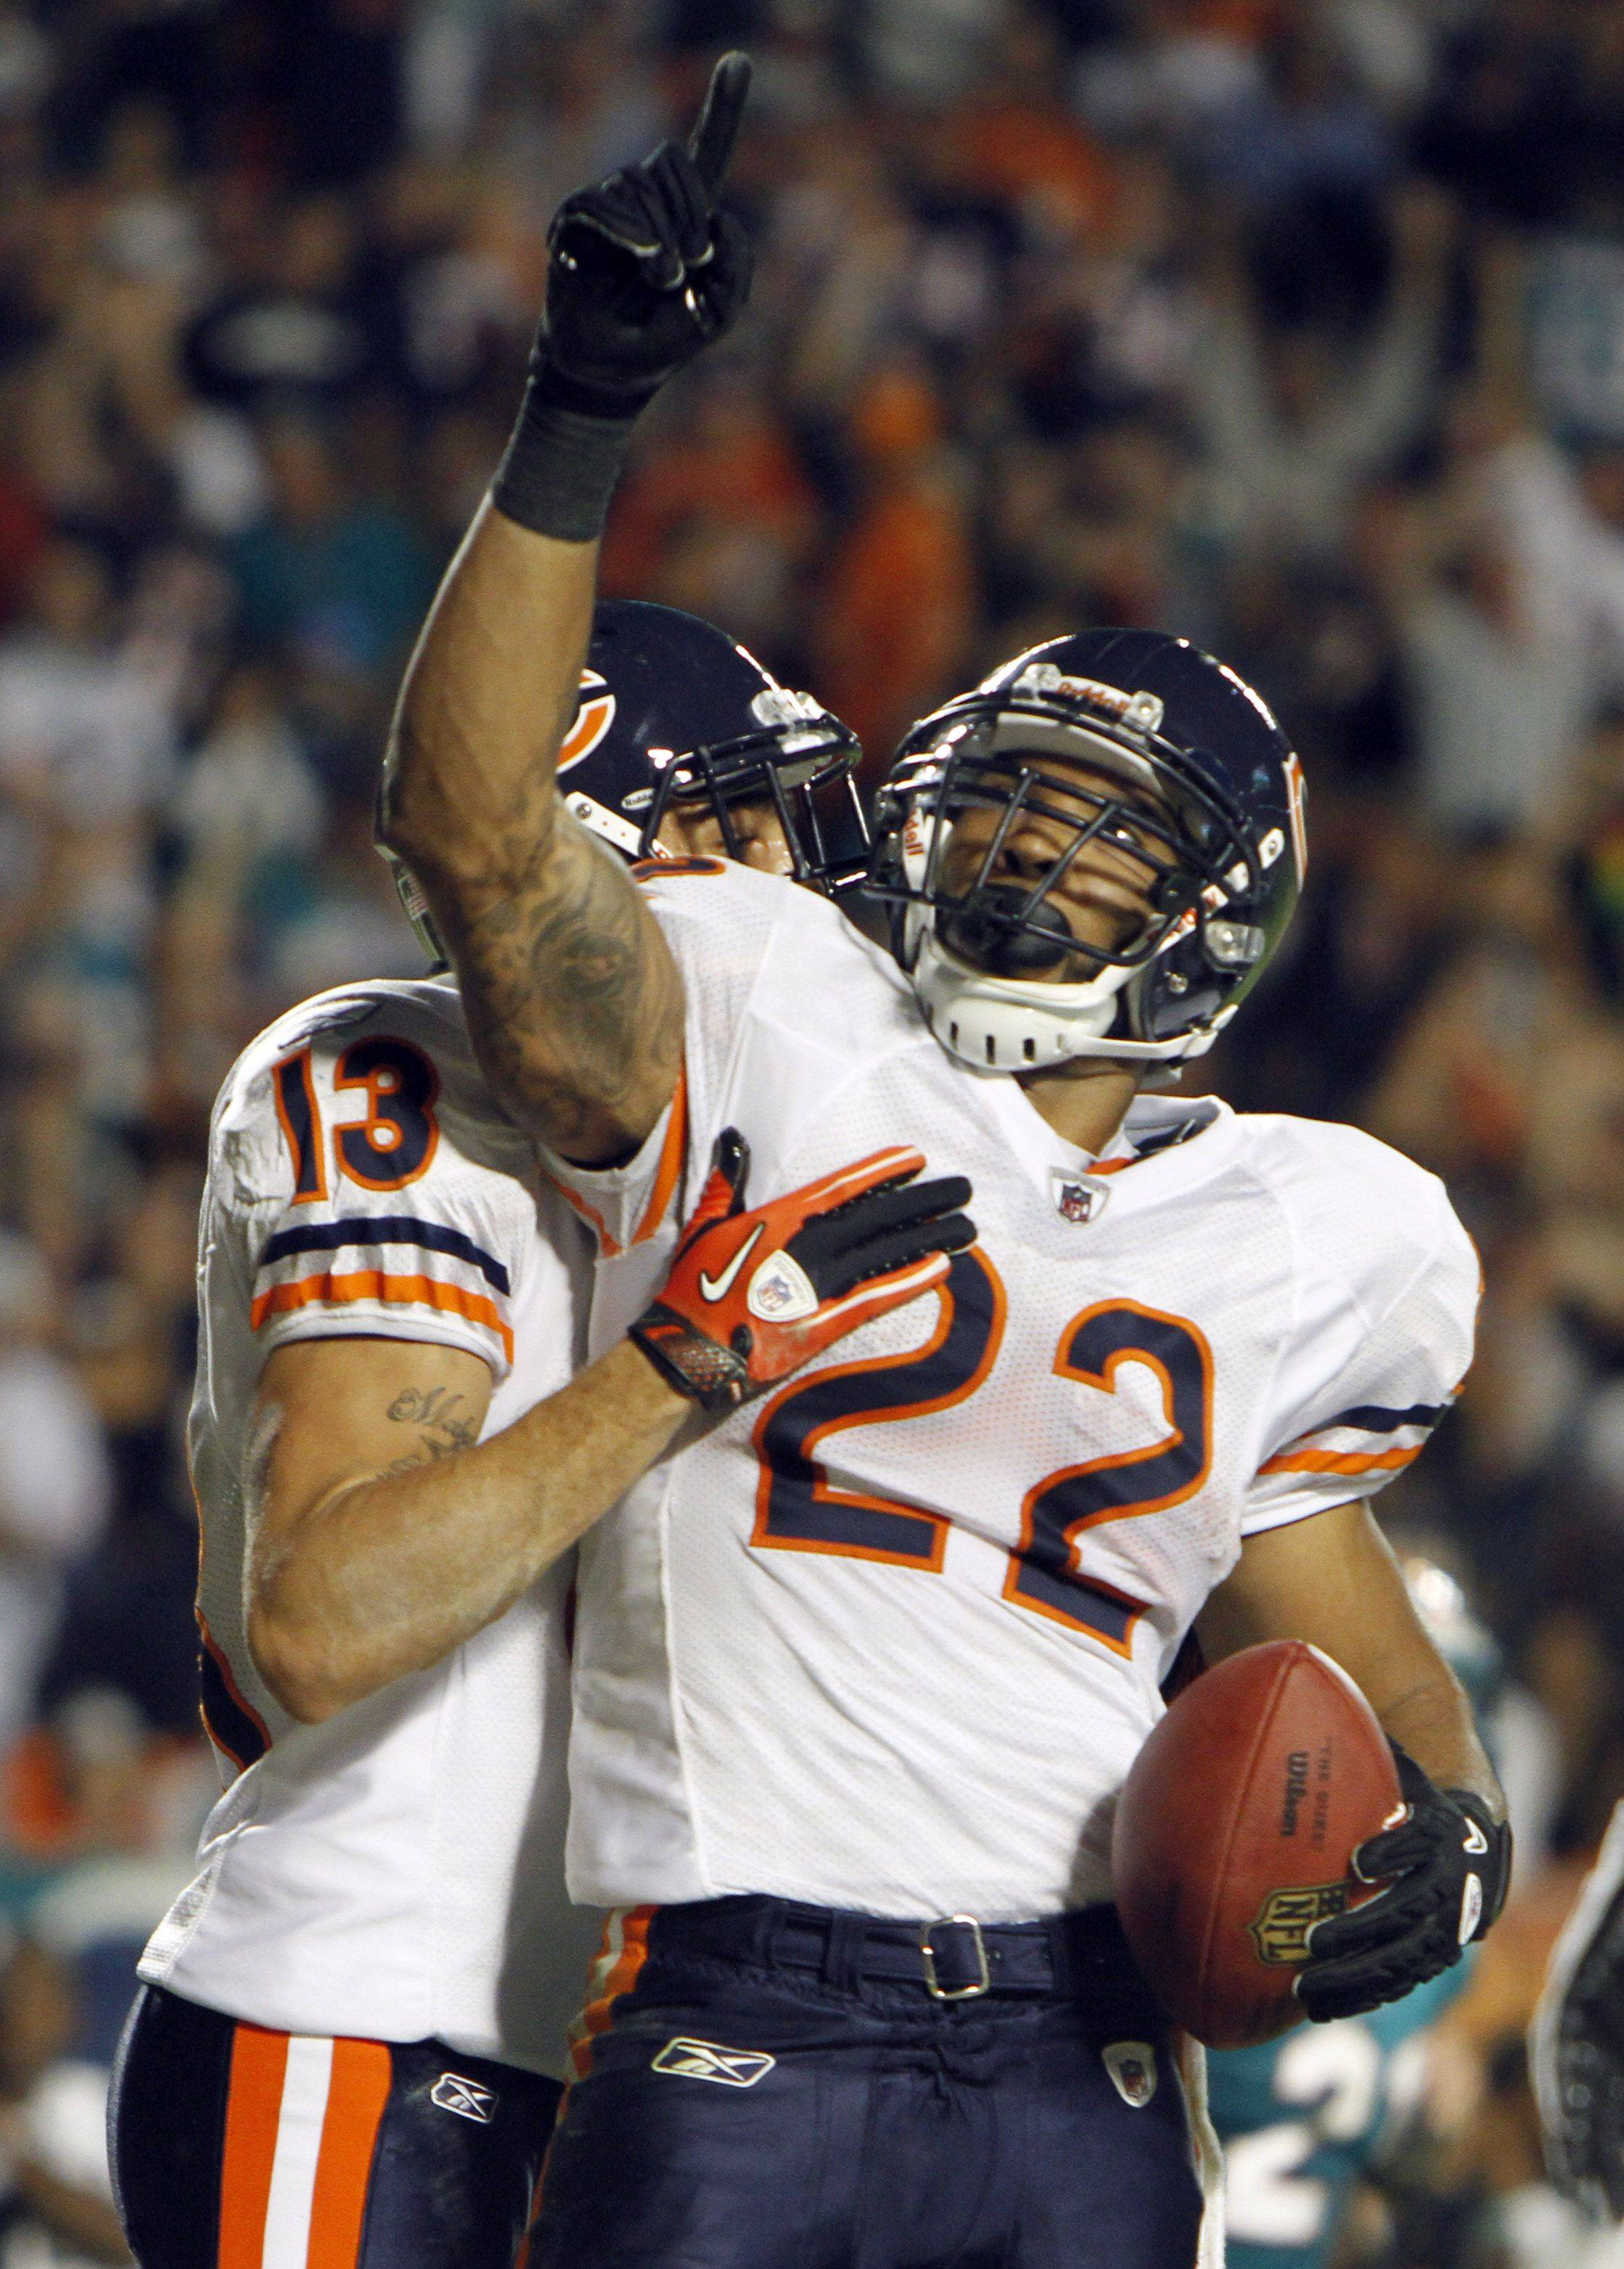 Bears running back Matt Forte is a legitimate NFL MVP candidate through the first seven games of the season.